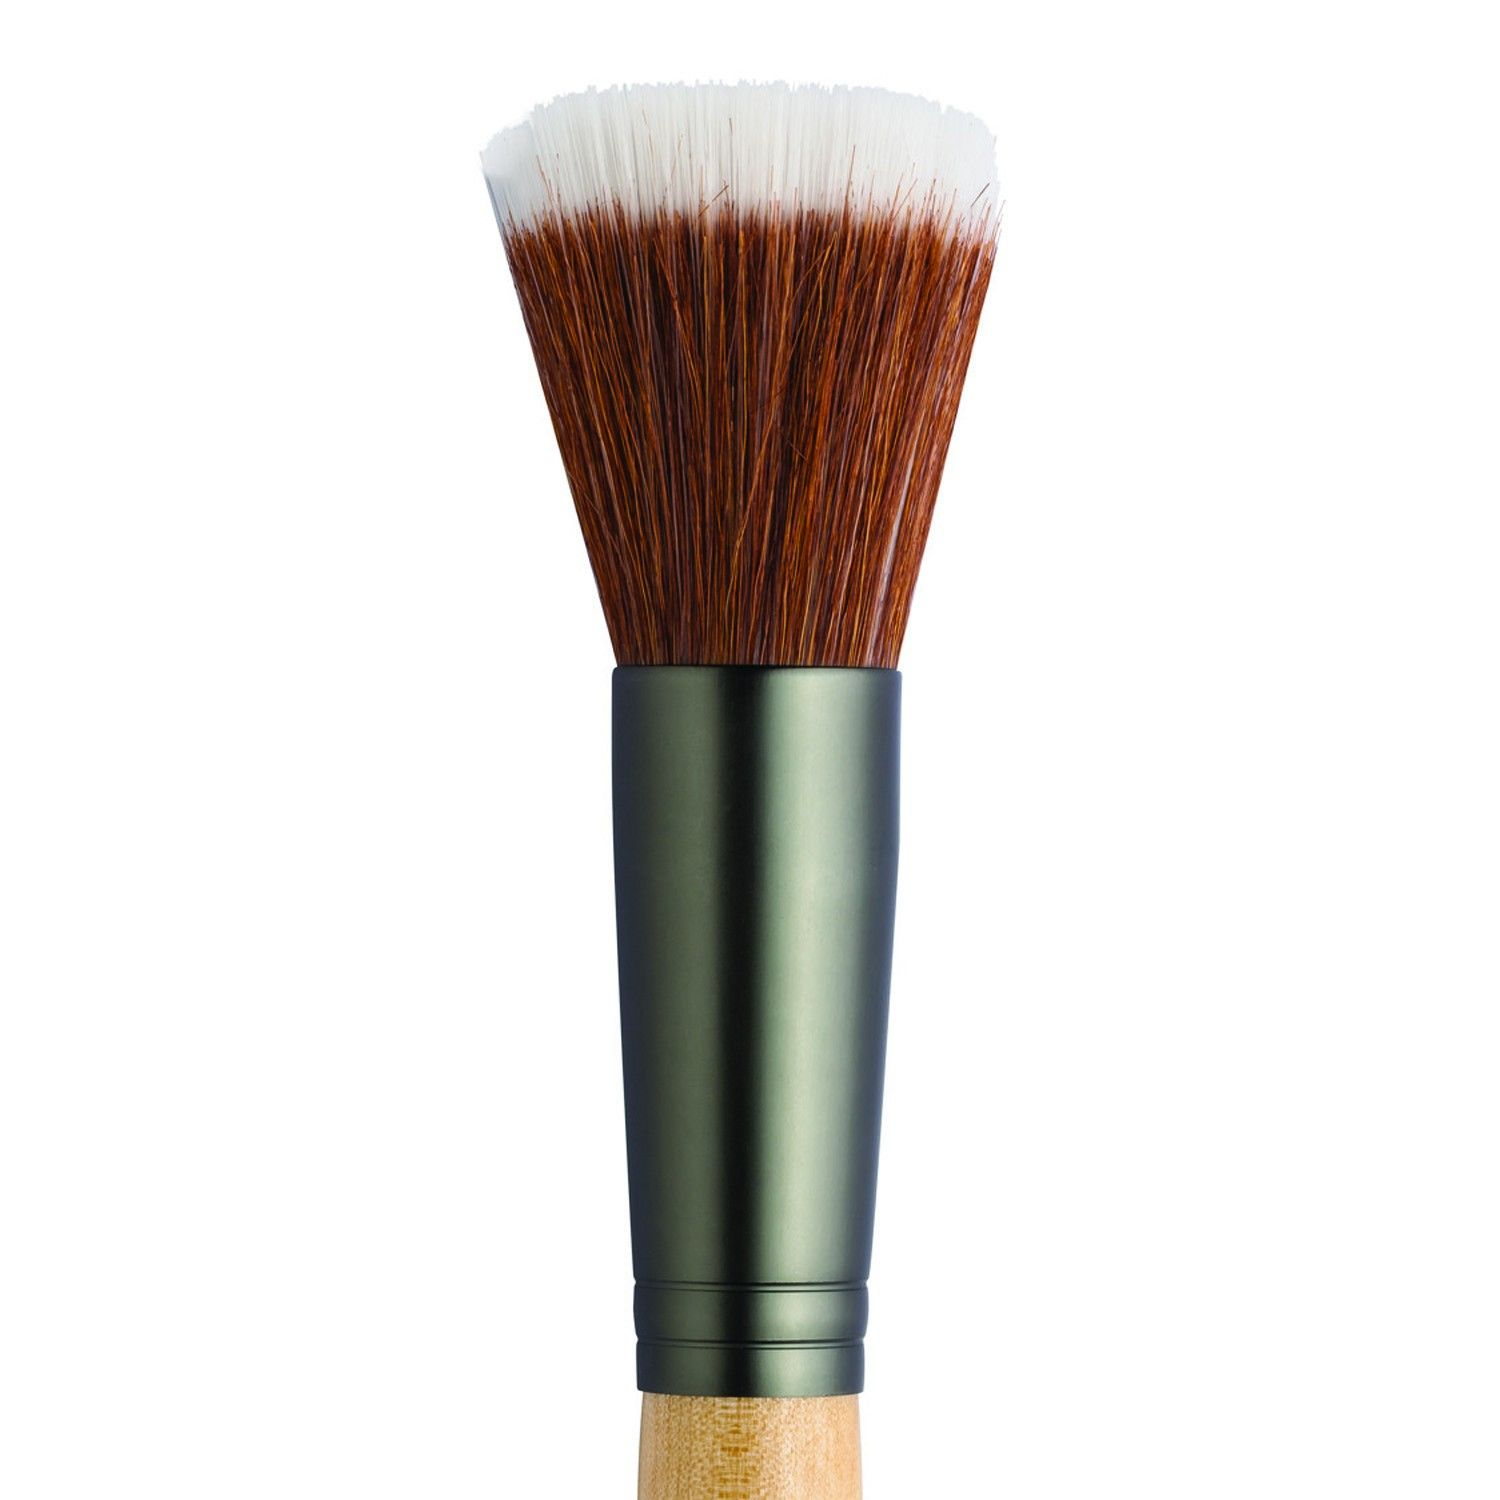 Jane Iredale Blending Brush | Makeup Brushes & Applicators | TOOLS